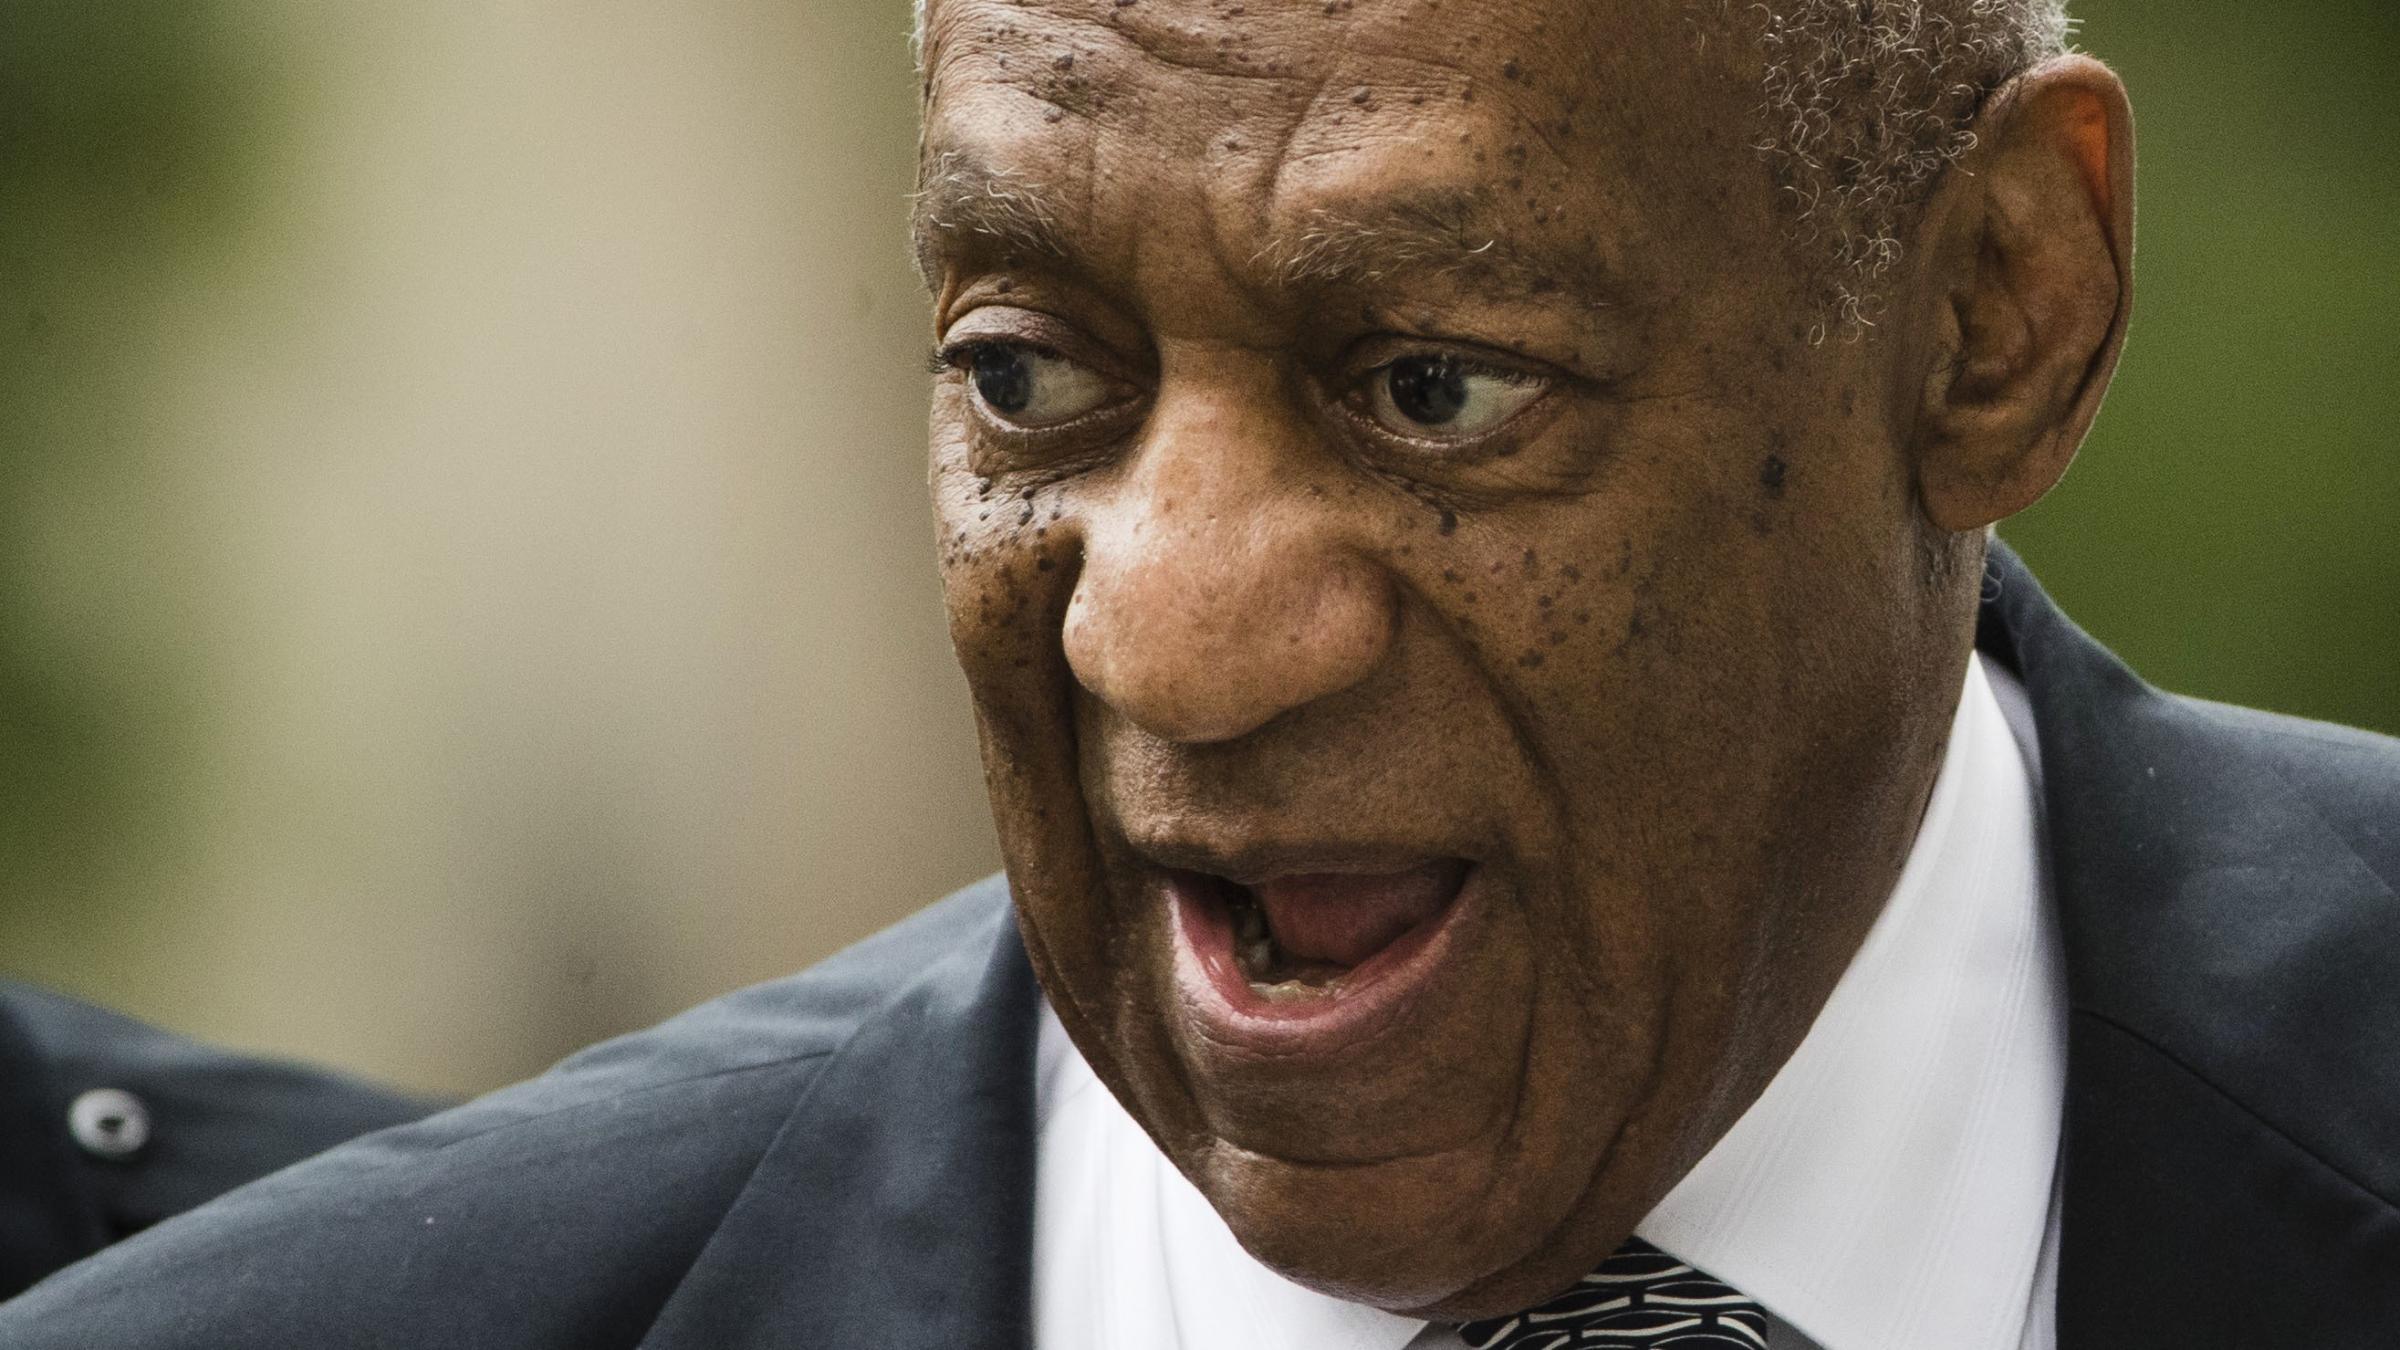 Cosby jurors wrap up for night, still at impasse